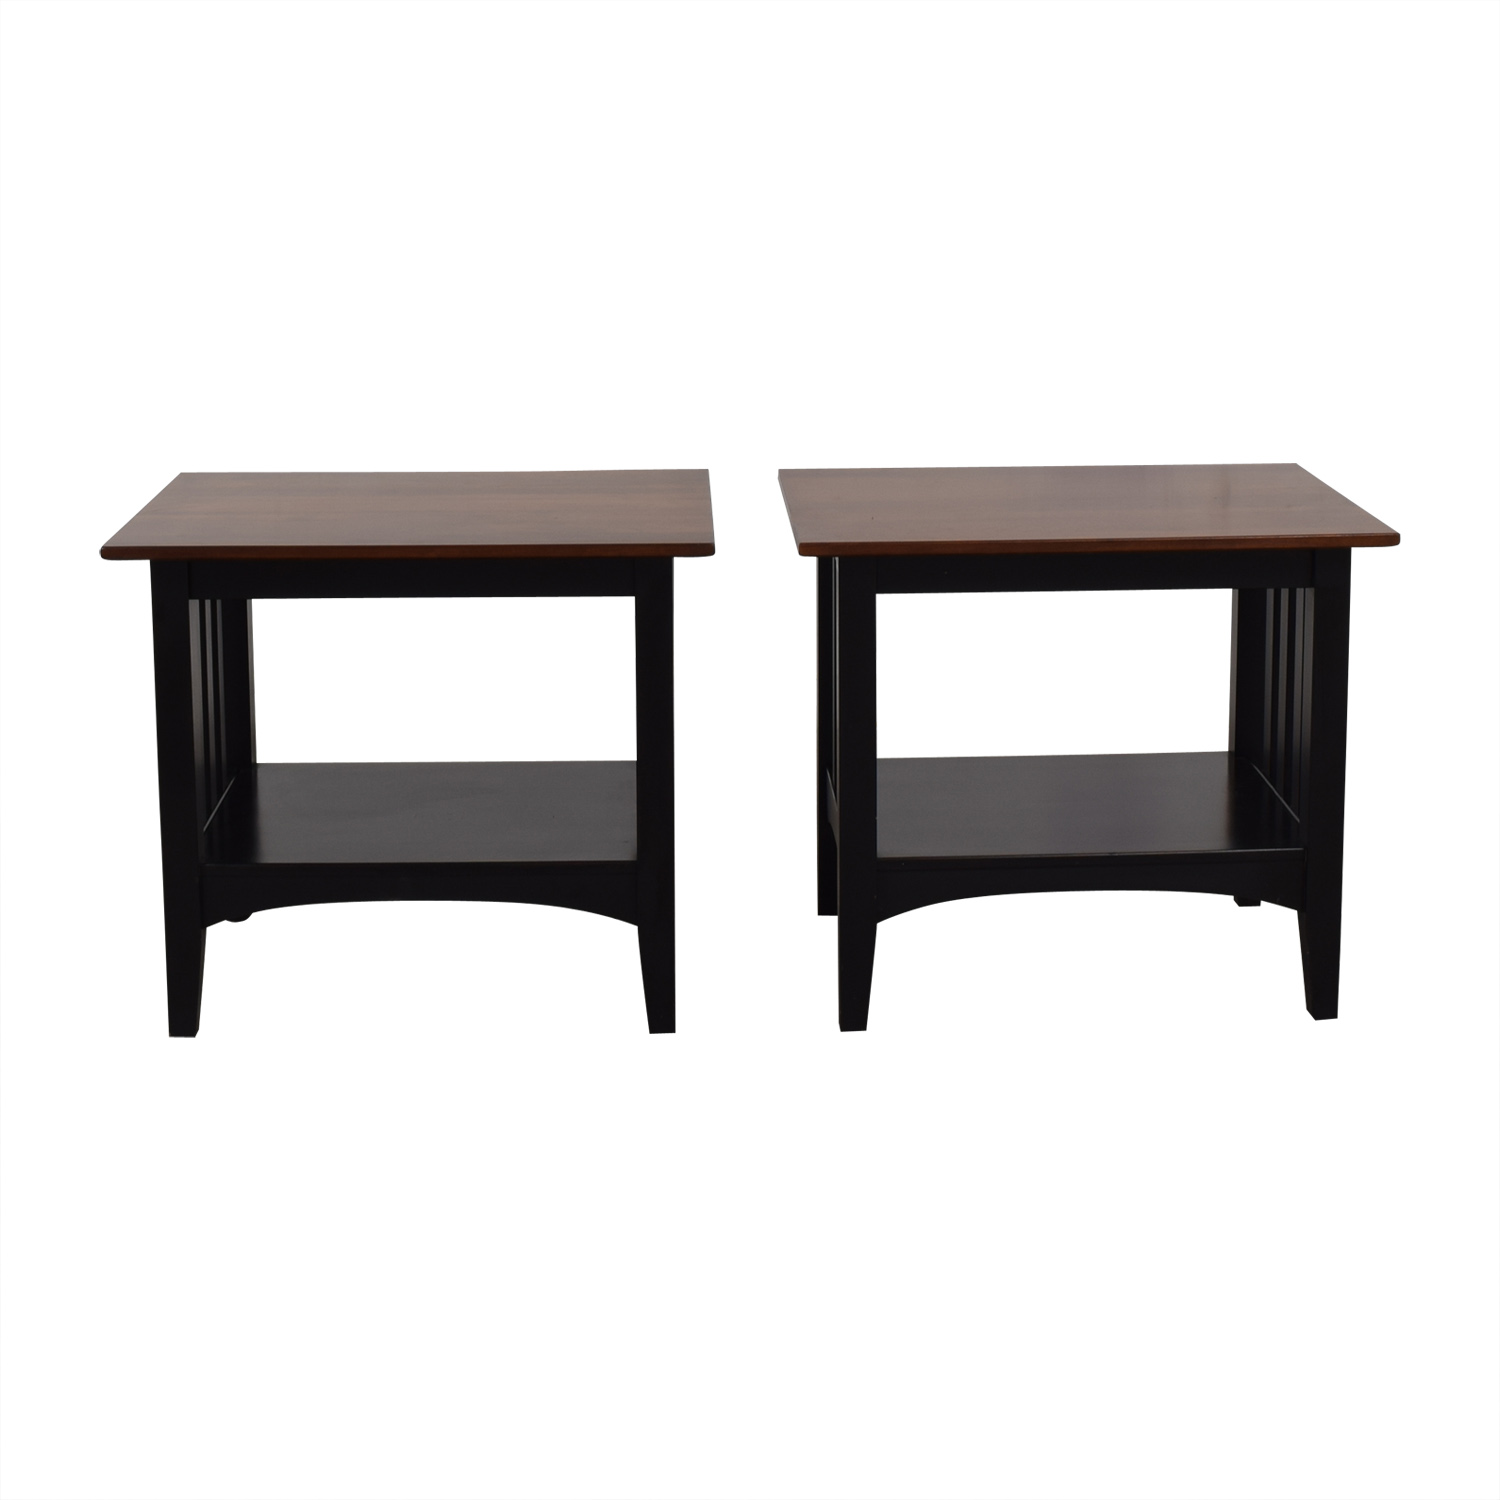 Ethan Allen Ethan Allen American Collection End Tables dimensions